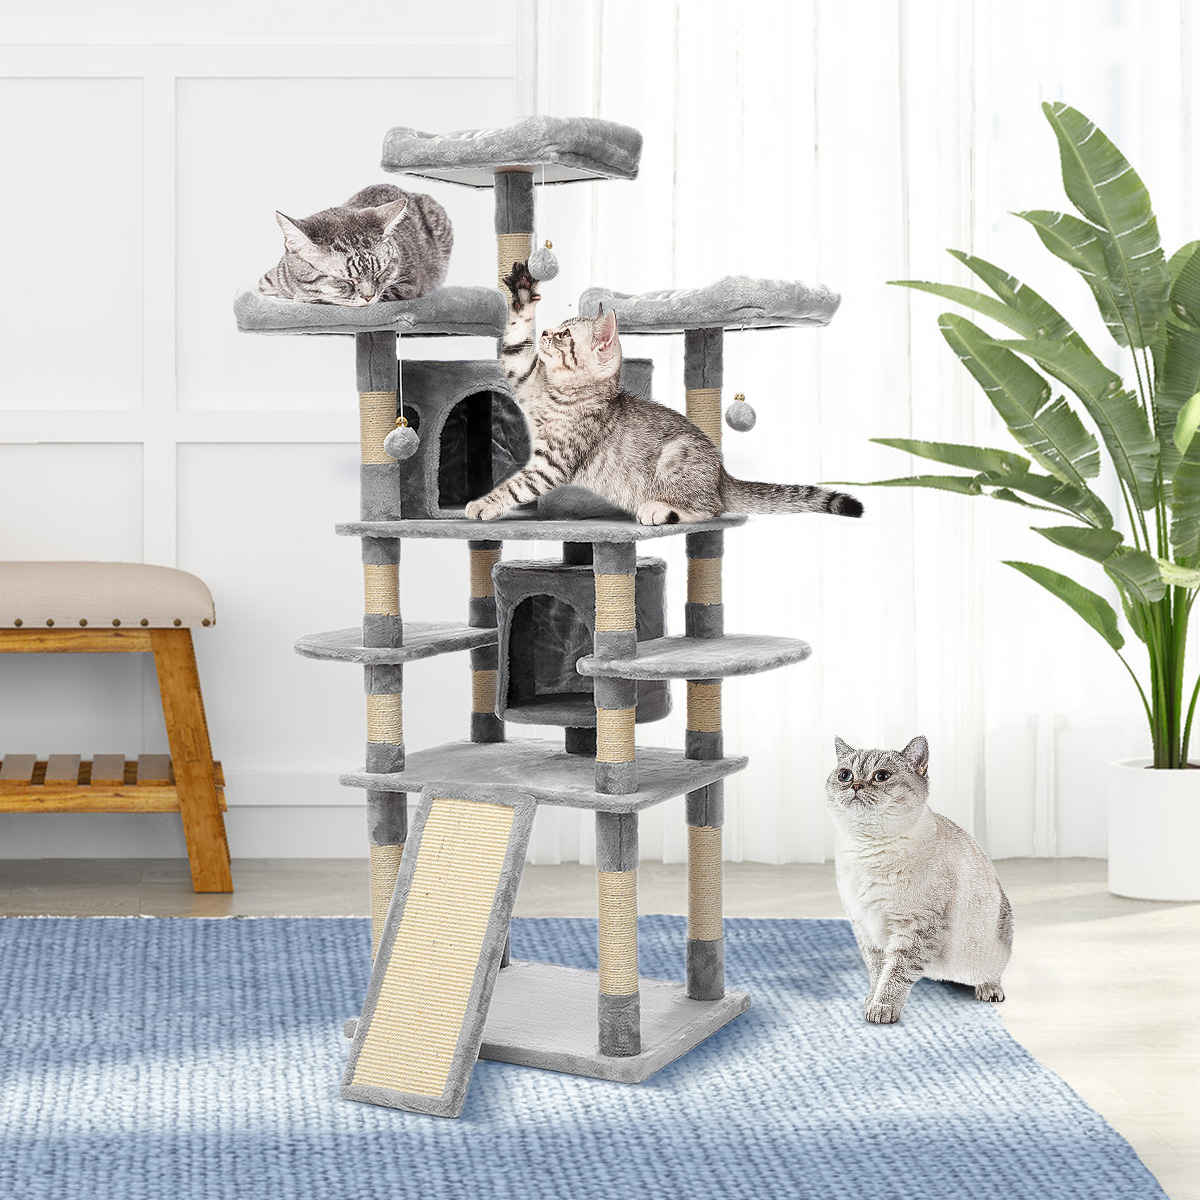 67 Inches Cat Tree For Large Cats Kitty Tower With Scratching Posts Perch Con